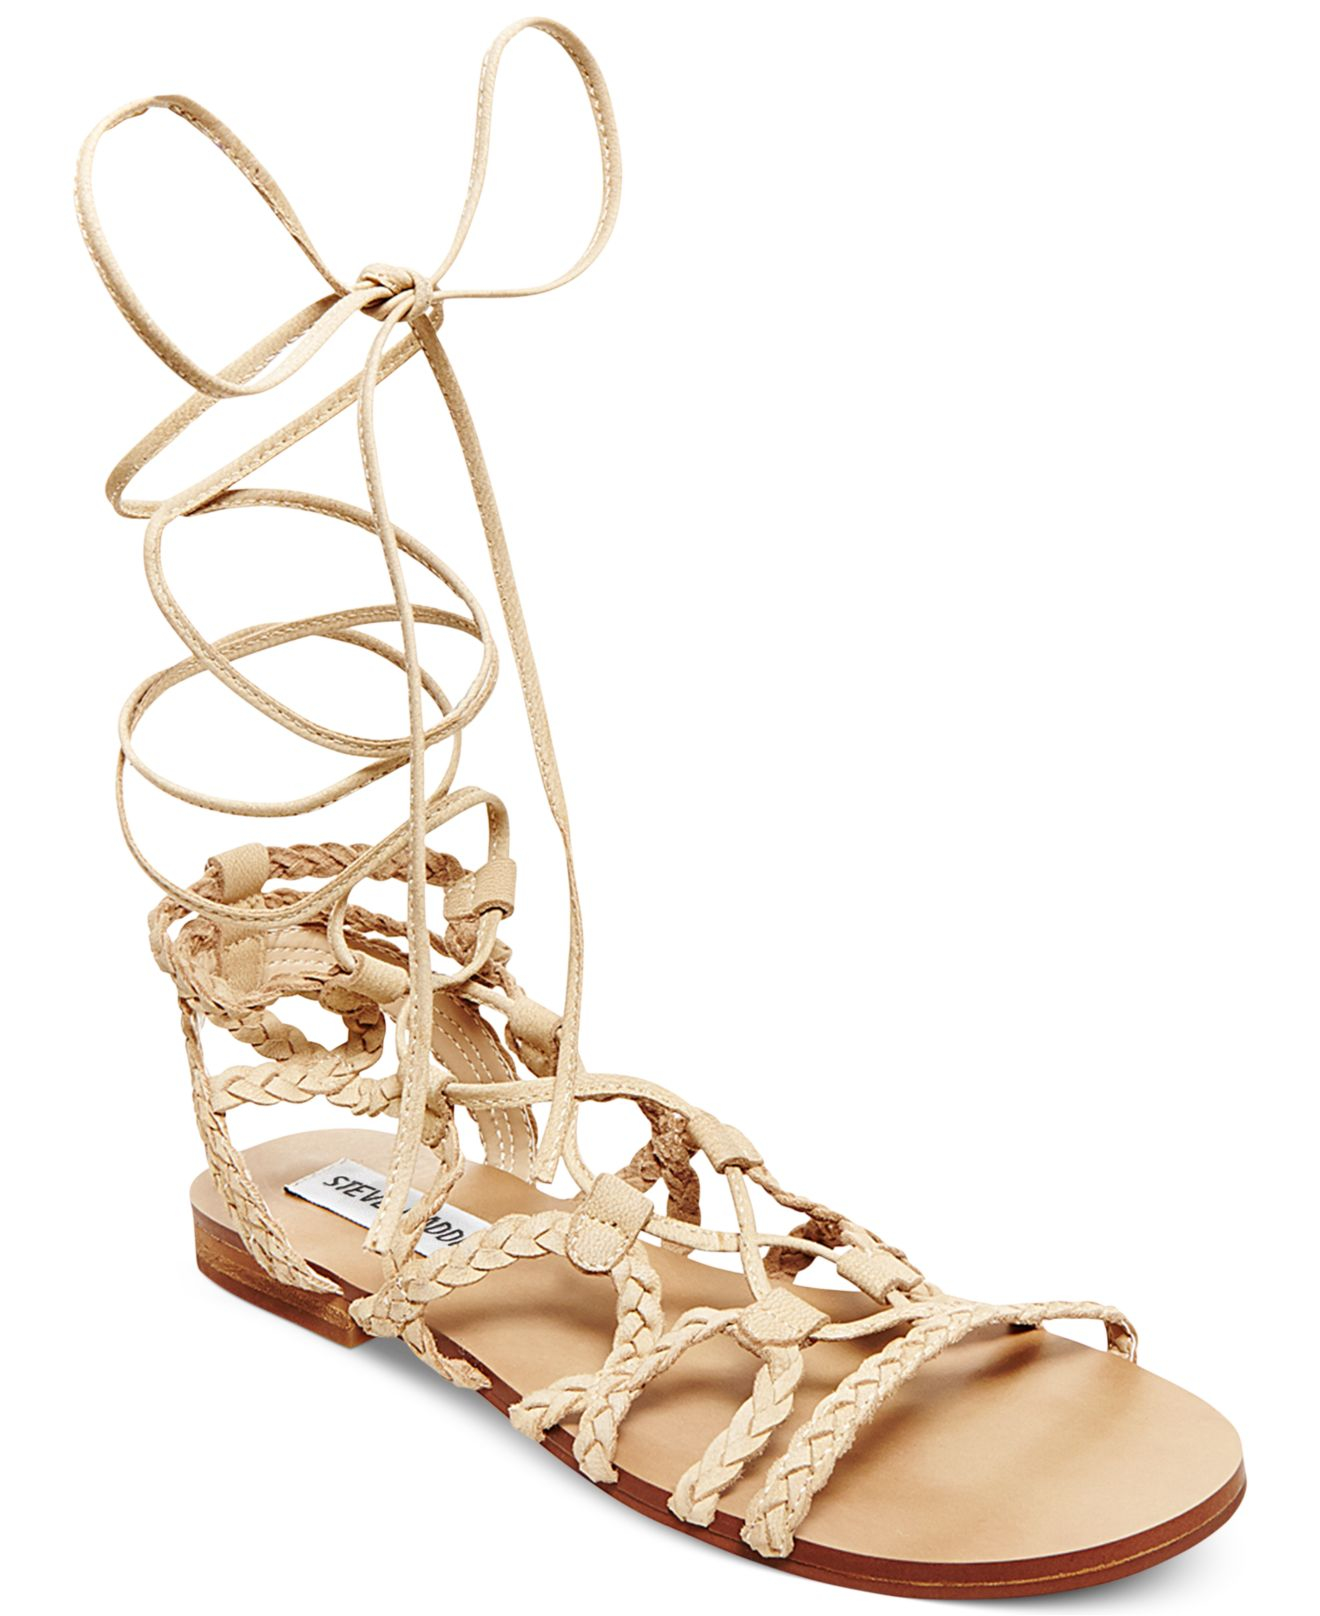 Intricate cutouts are pulled together by a lace-up front on a soft faux suede gladiator sandal.